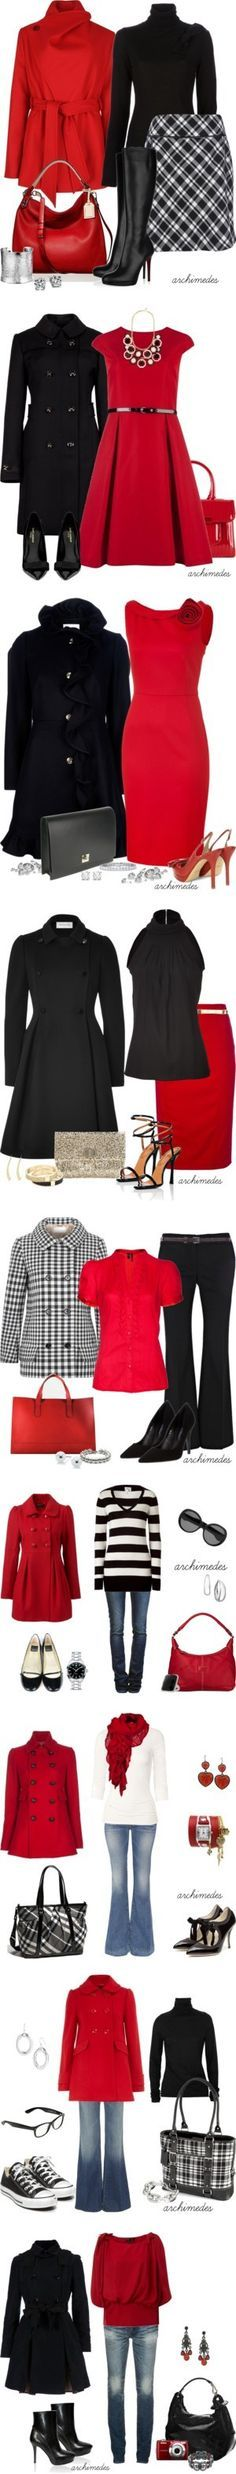 """Red and Black"" by archimedes16 on Polyvore. One thing I particularly love about these outfits is that the shoes are not all hooker shoes."